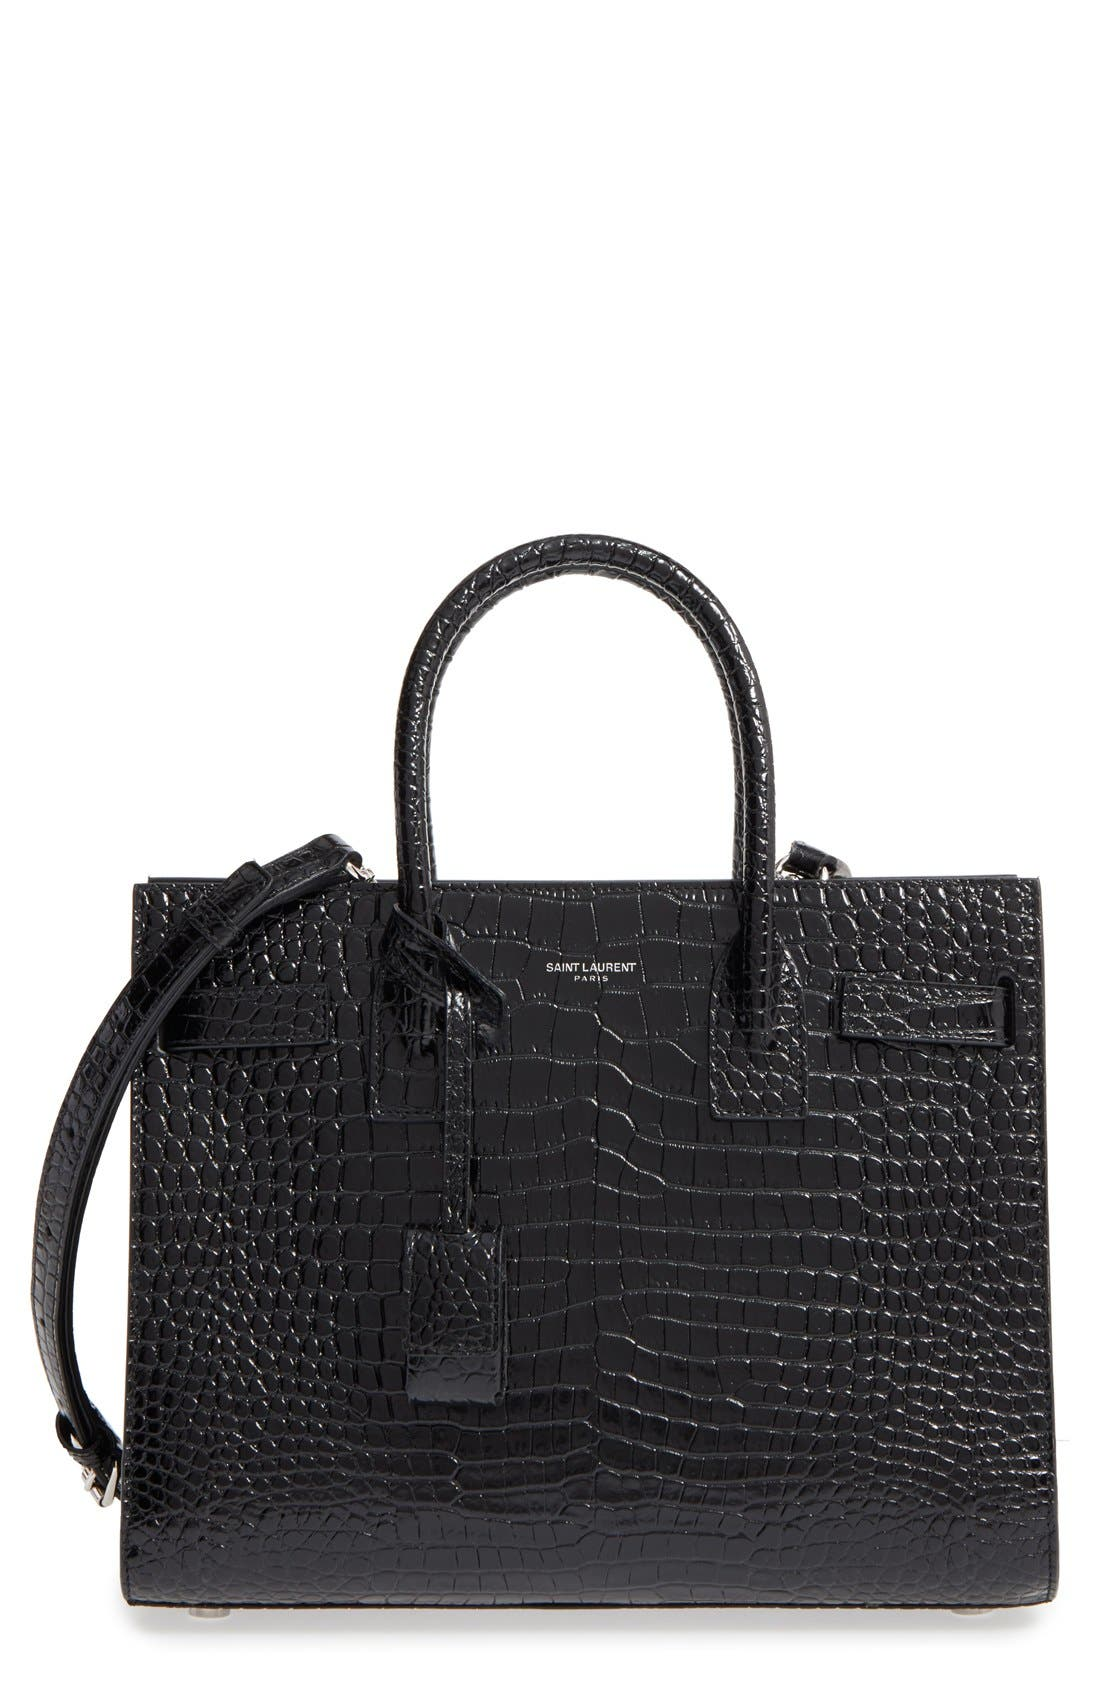 Alternate Image 1 Selected - Saint Laurent Baby Sac de Jour Croc Embossed Calfskin Leather Tote